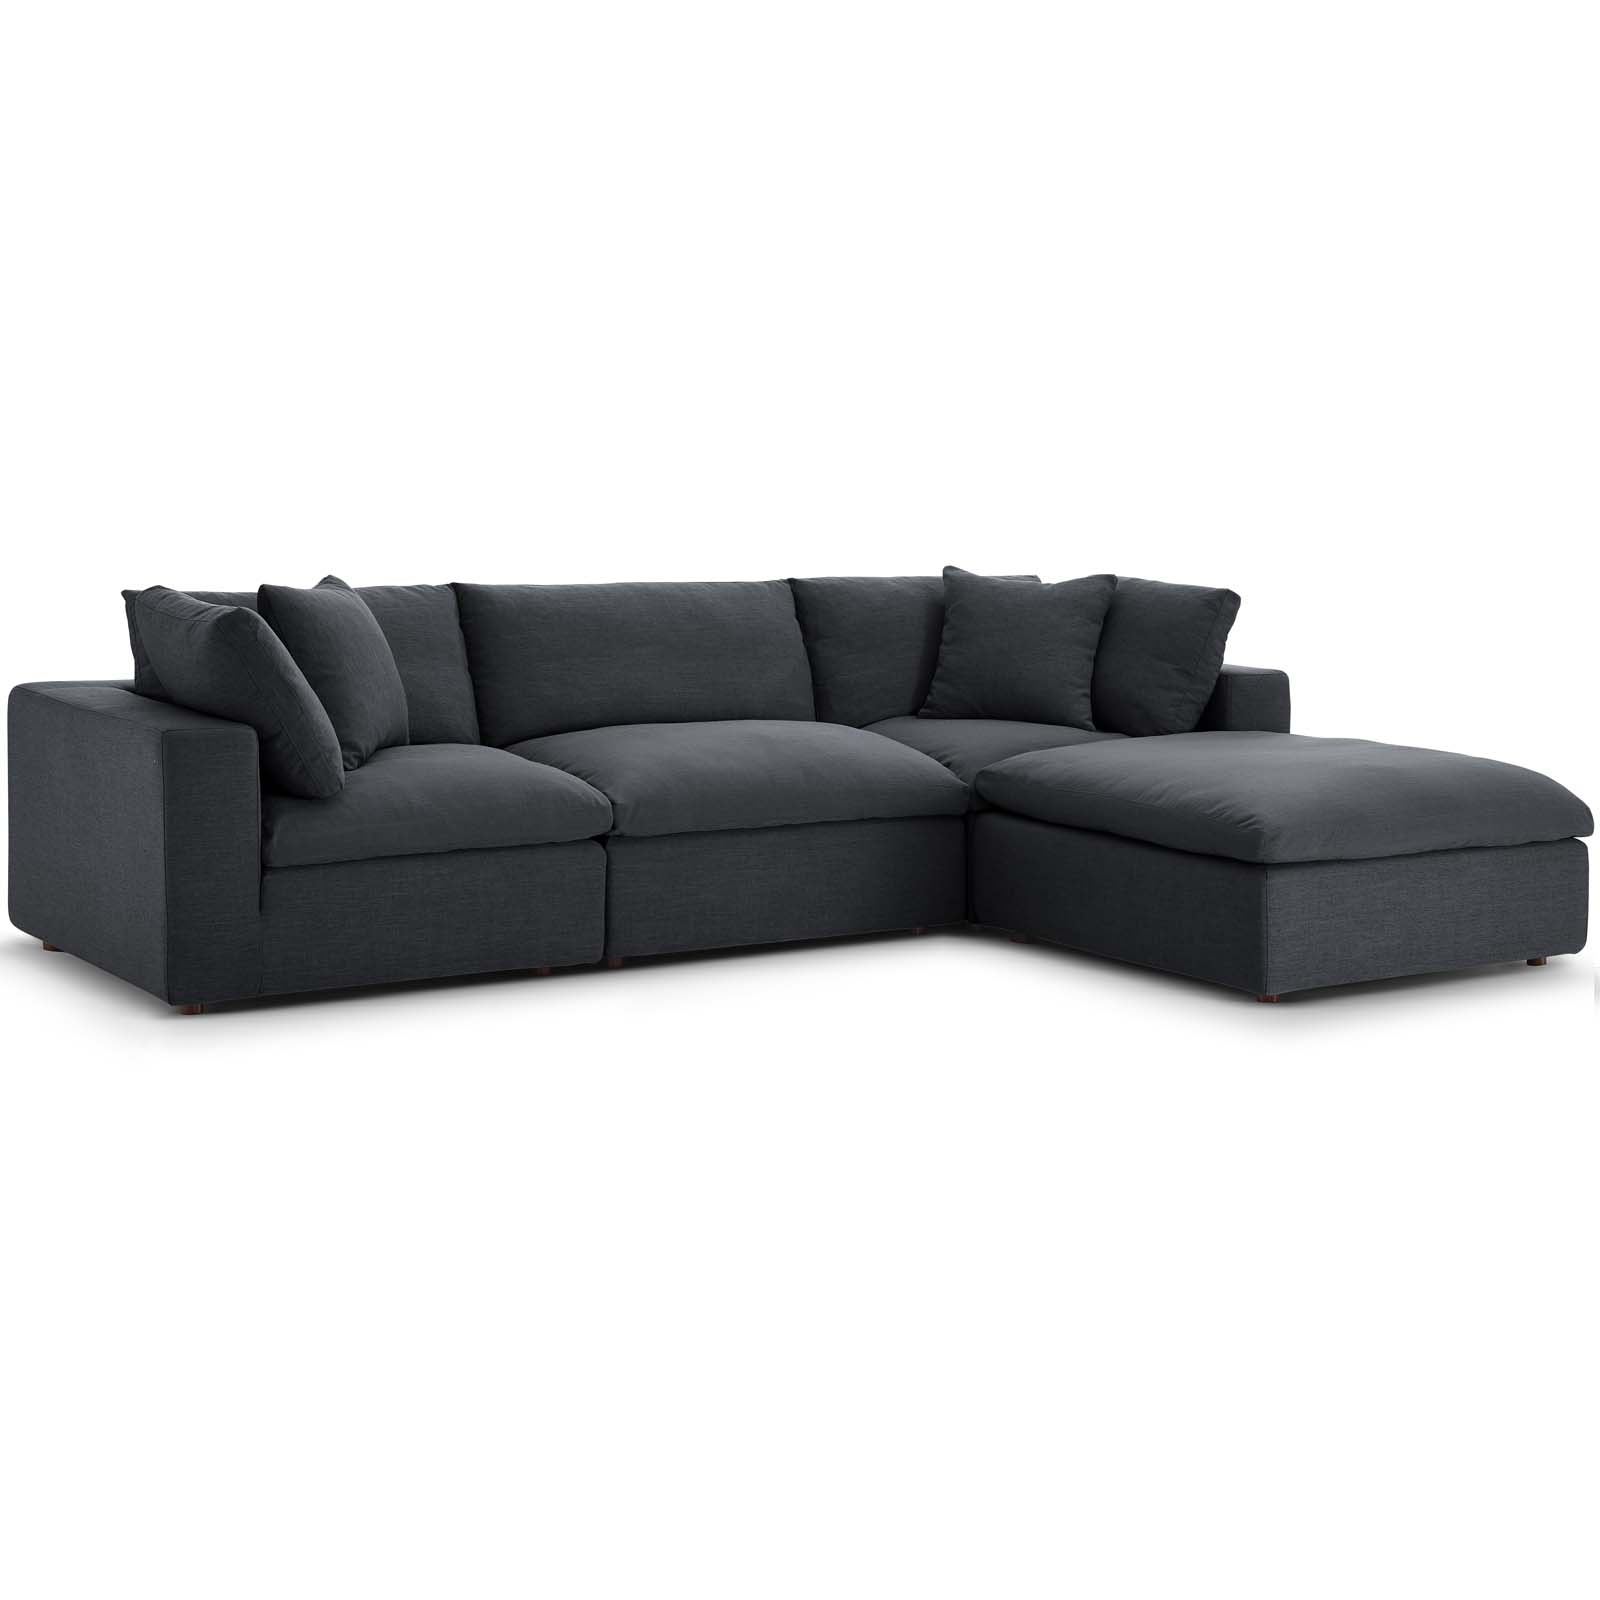 Commix Down Filled Overstuffed 4 Piece Sectional Sofa Set Gray Intended For Down Filled Sofas (View 4 of 15)